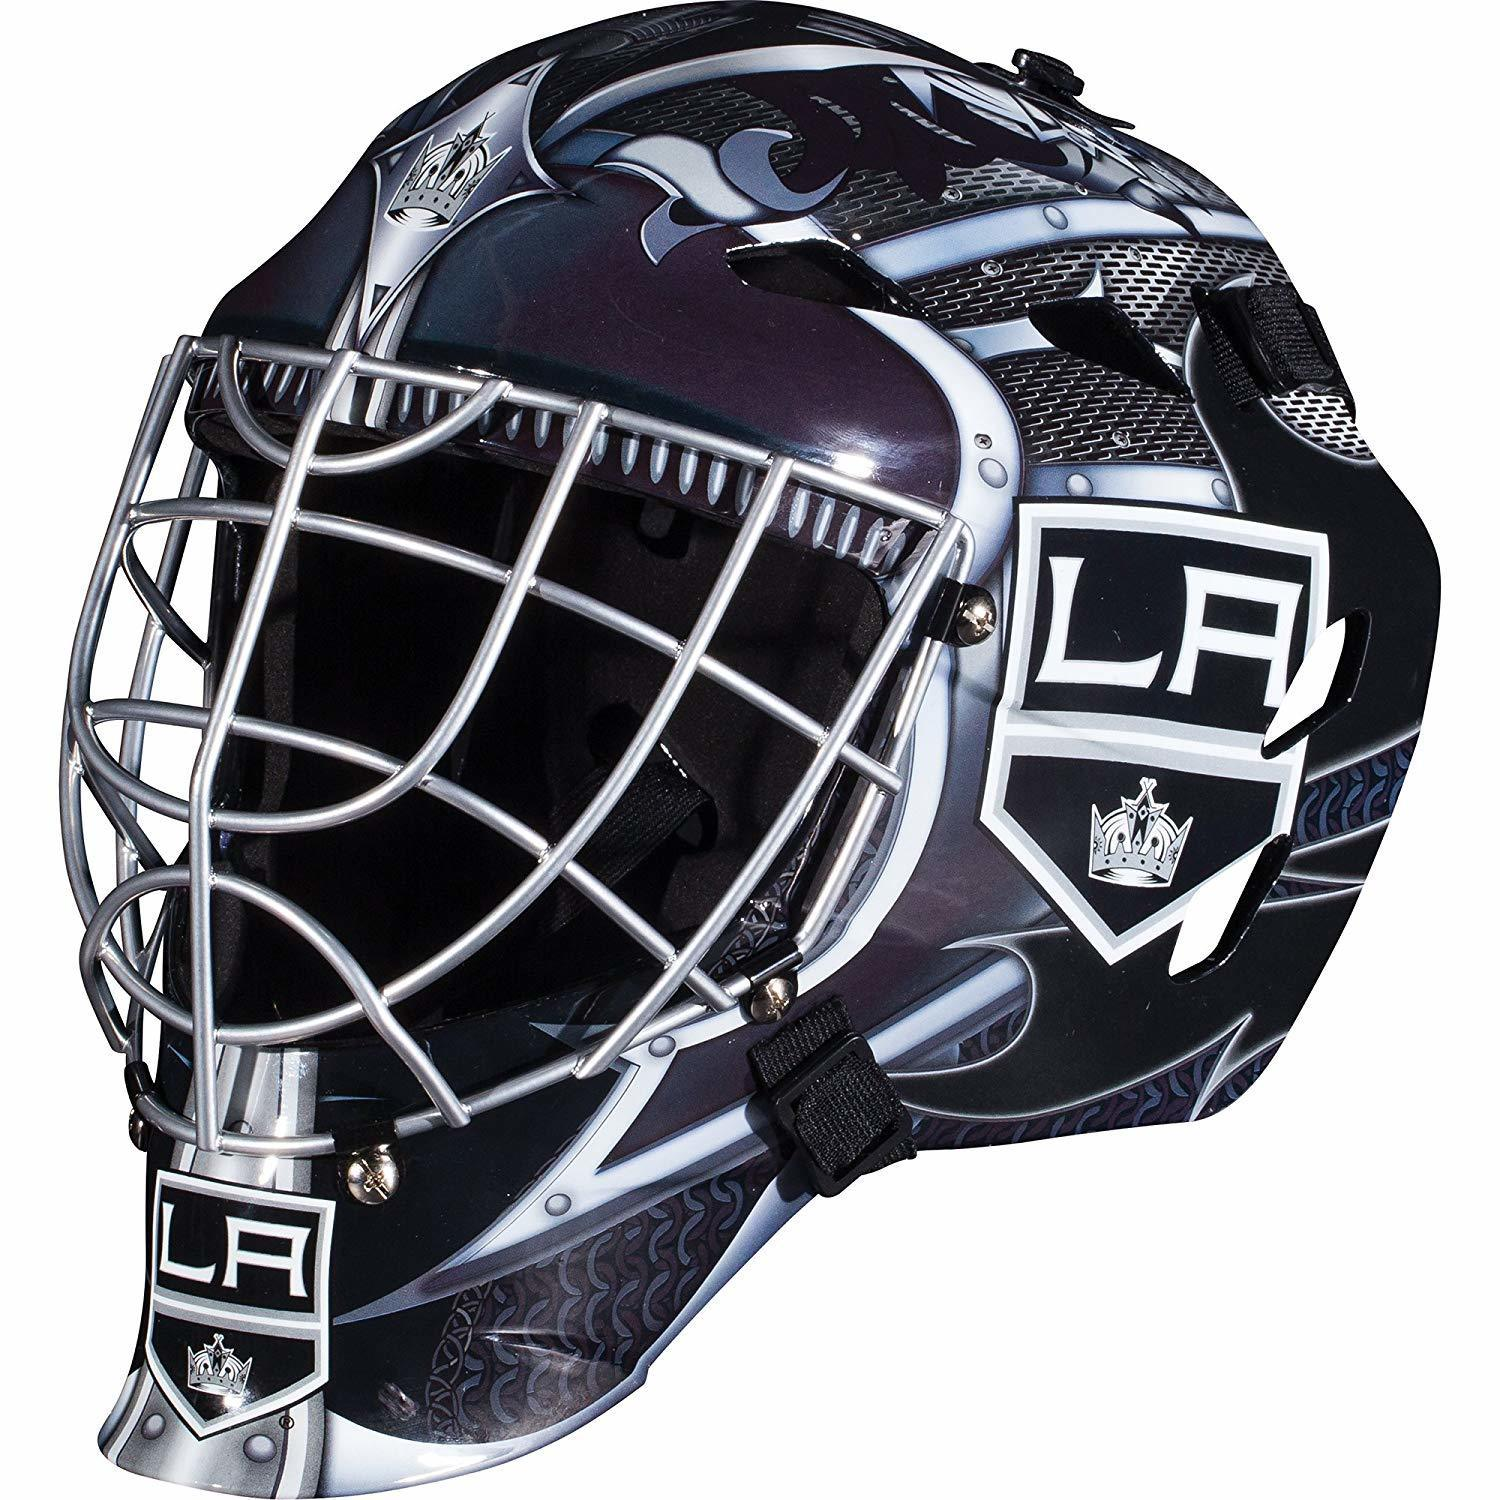 e06ef8b2fae fit to viewer. prev next. Franklin Sports GFM 1500 NHL Team Goalie Face Mask